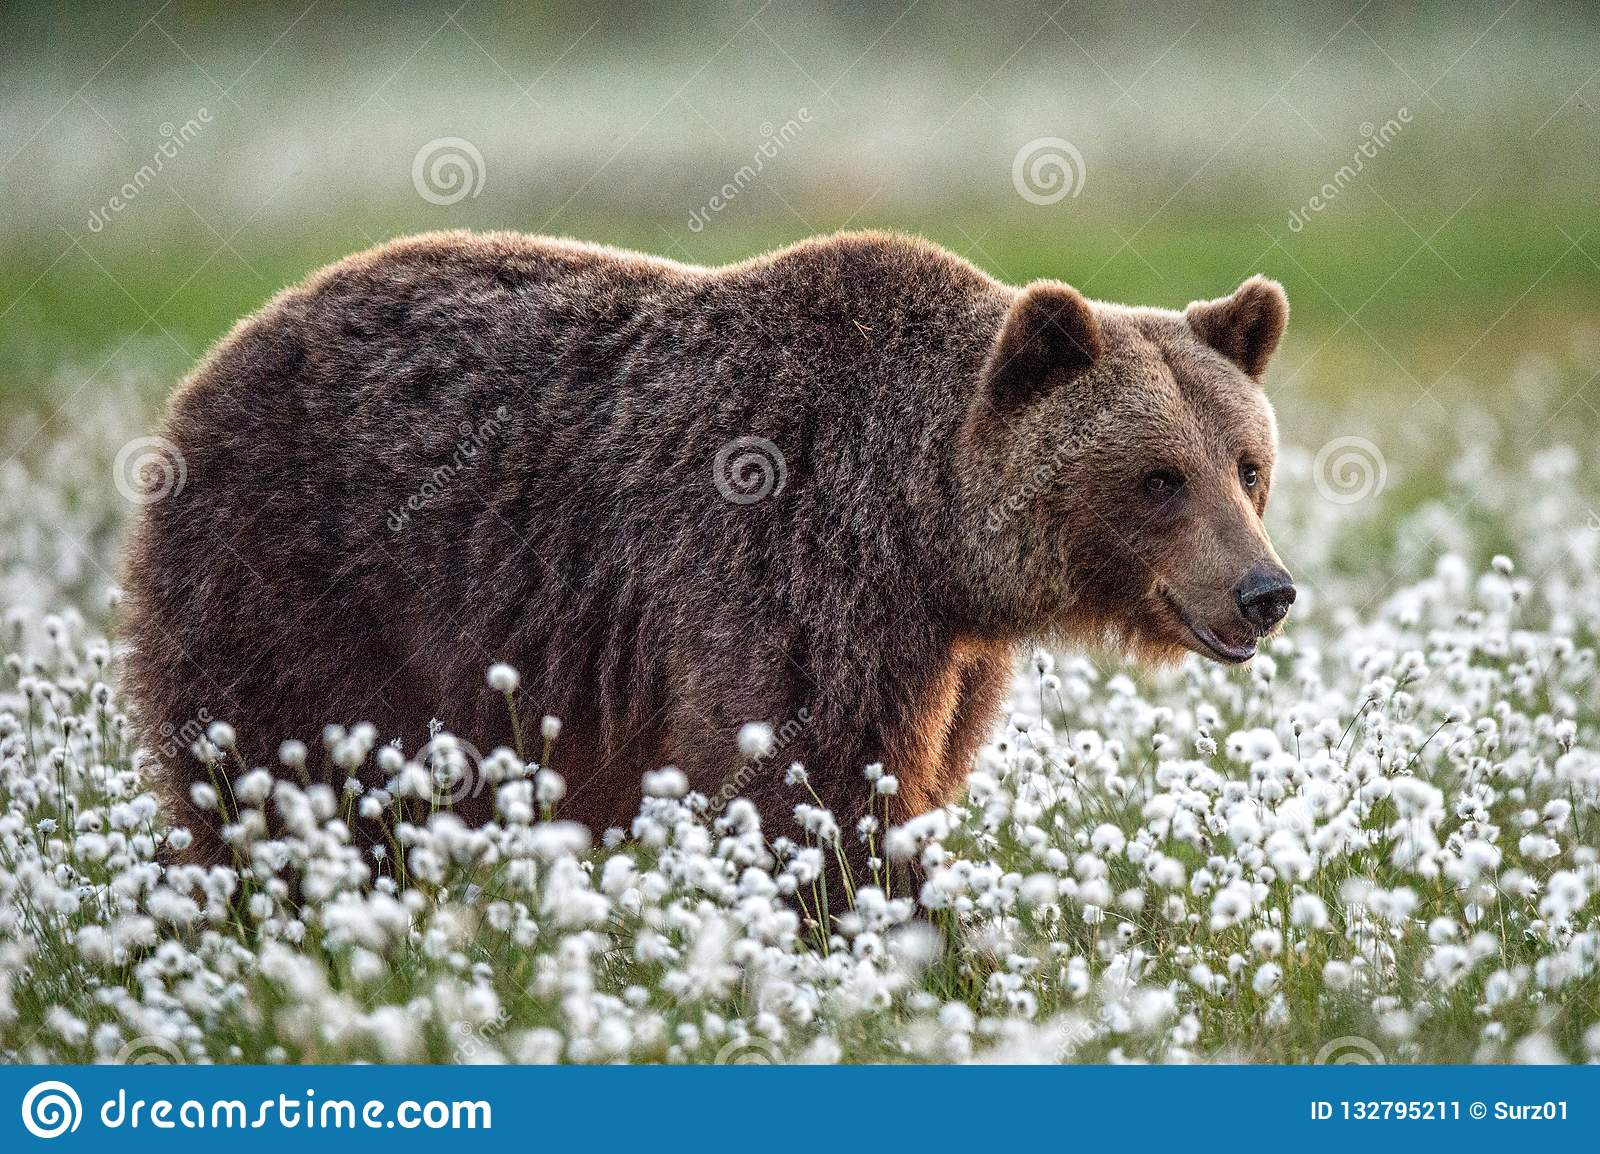 Brown bear in the summer forest on the bog among white flowers.